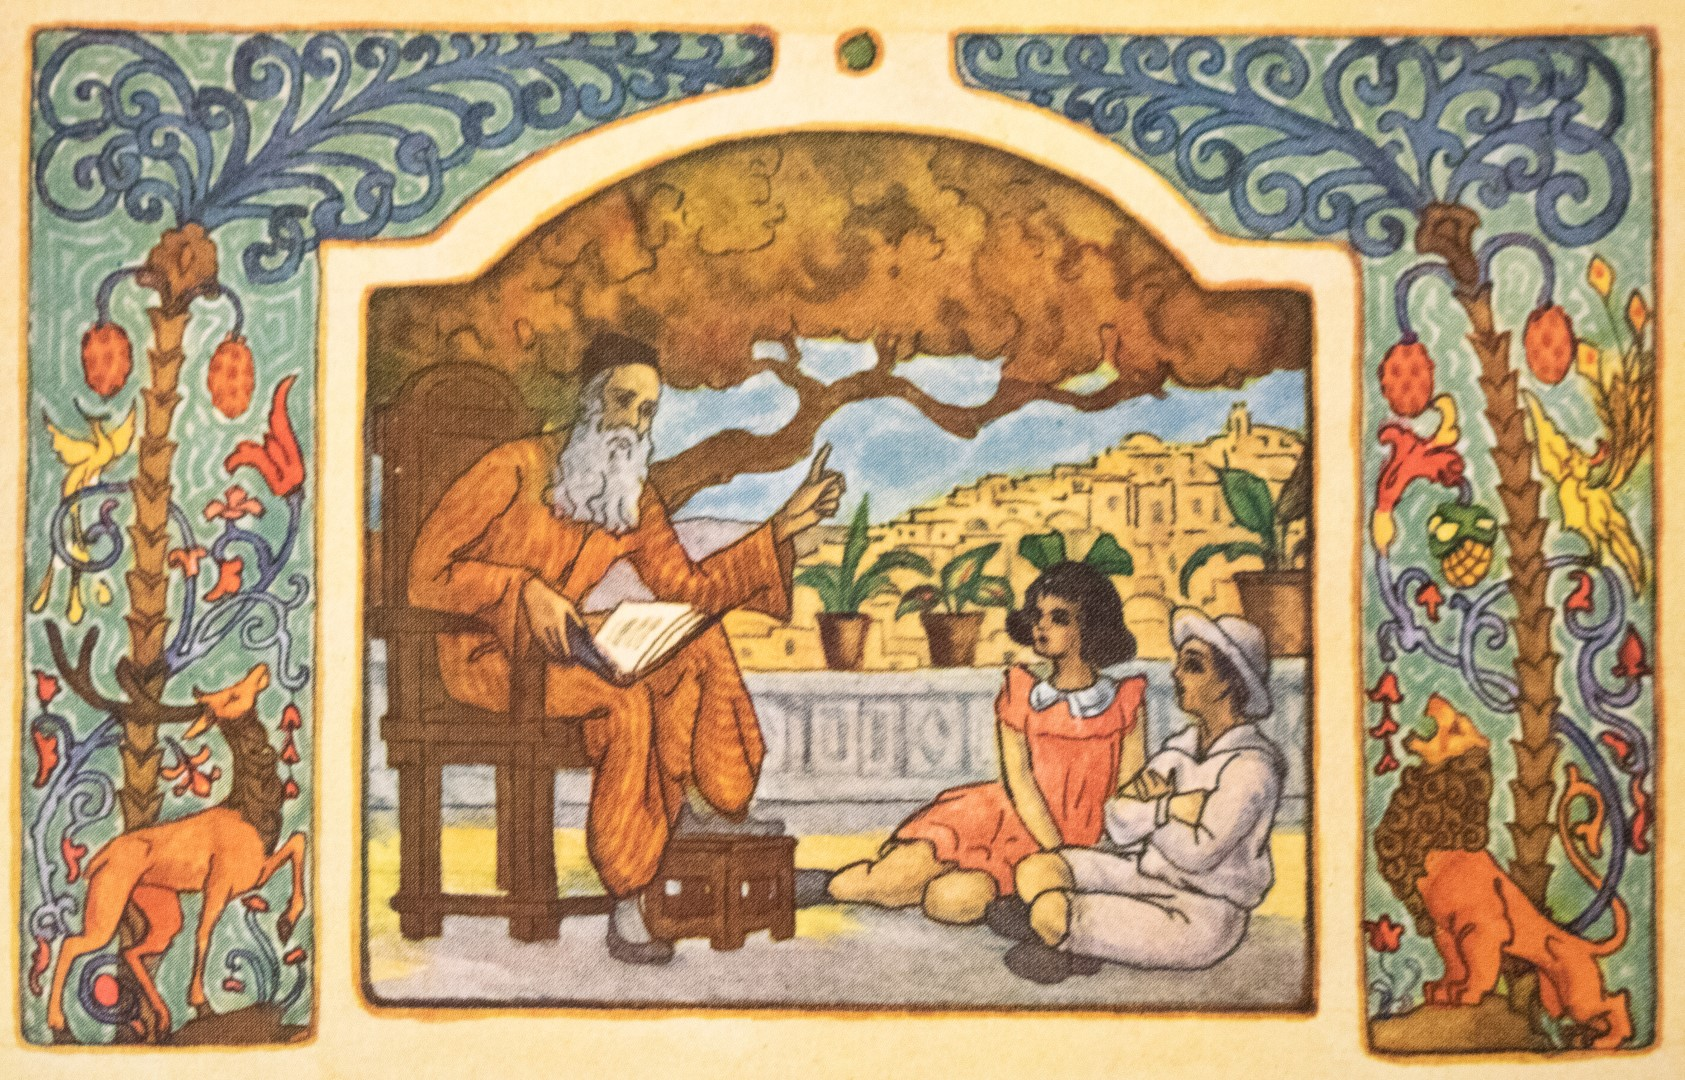 Image depicts two children in a quasi-Biblical landscape learning about the holidays of the Jewish calendar at the feet of an older relative or teacher. The image is typical of the Bezalel school's decorative art nouveau style.